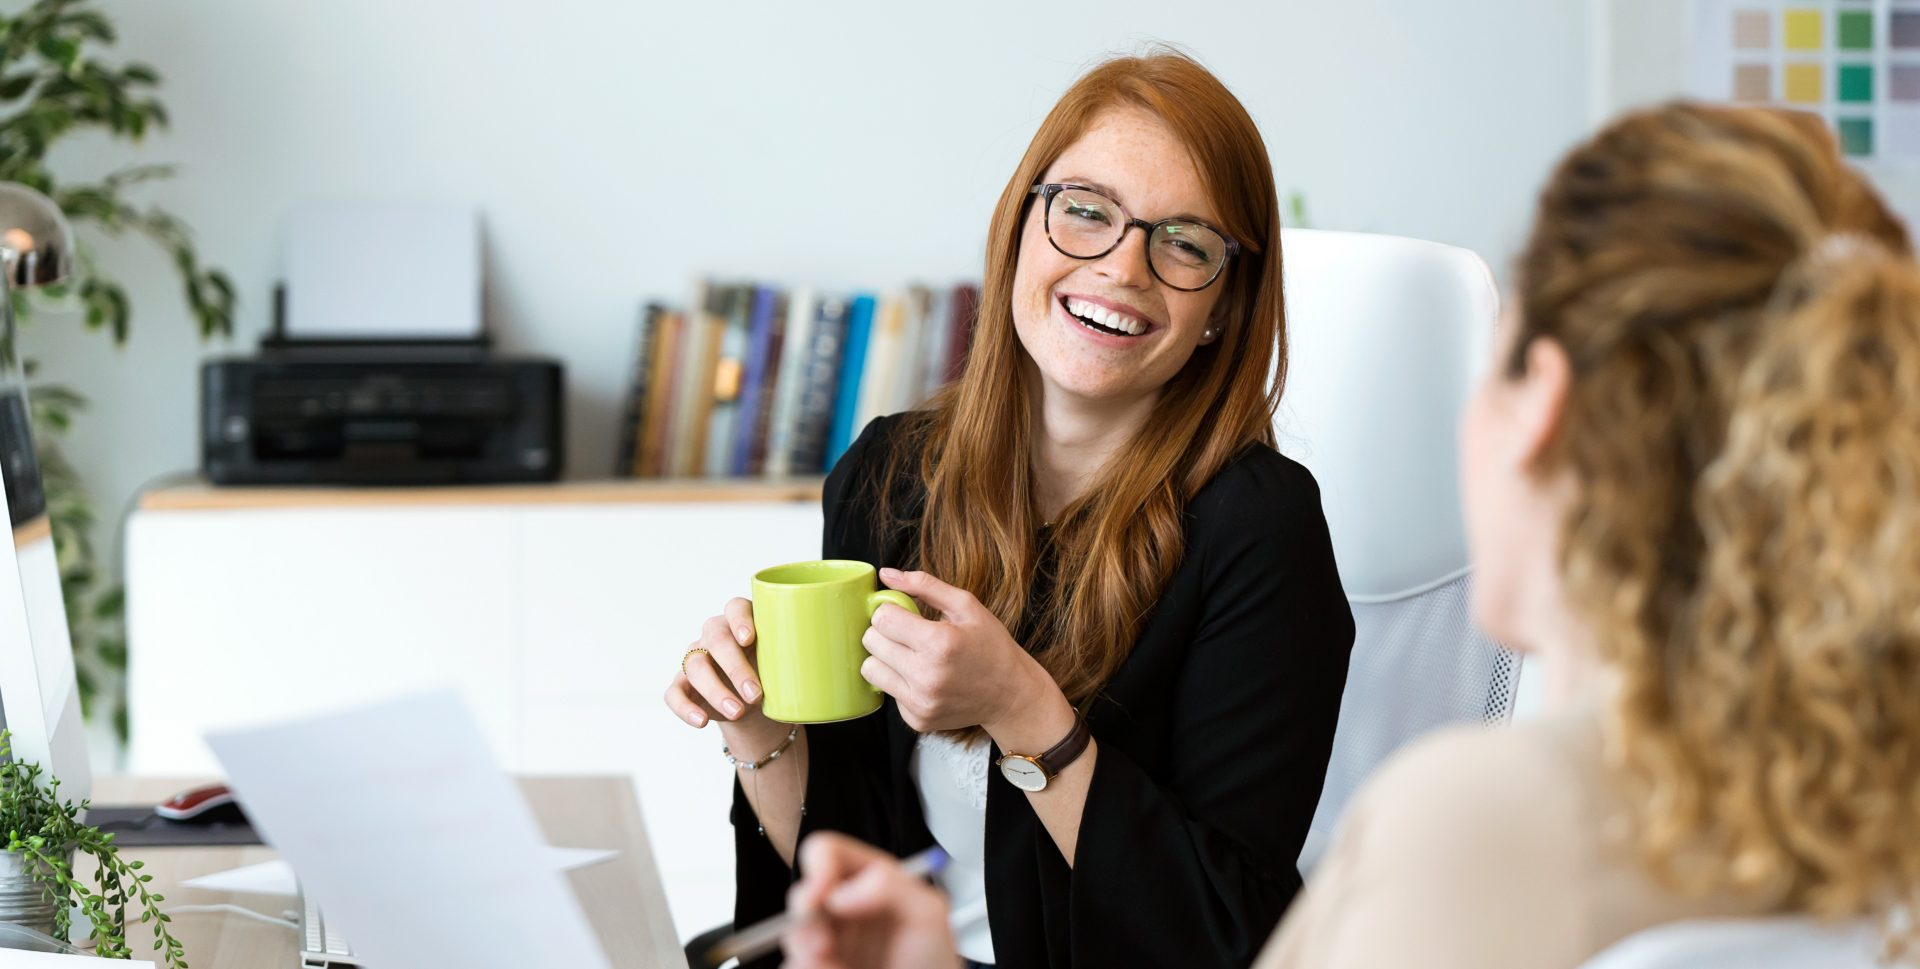 Woman laughing while chatting with a coworker. Woman is holding a green mug.